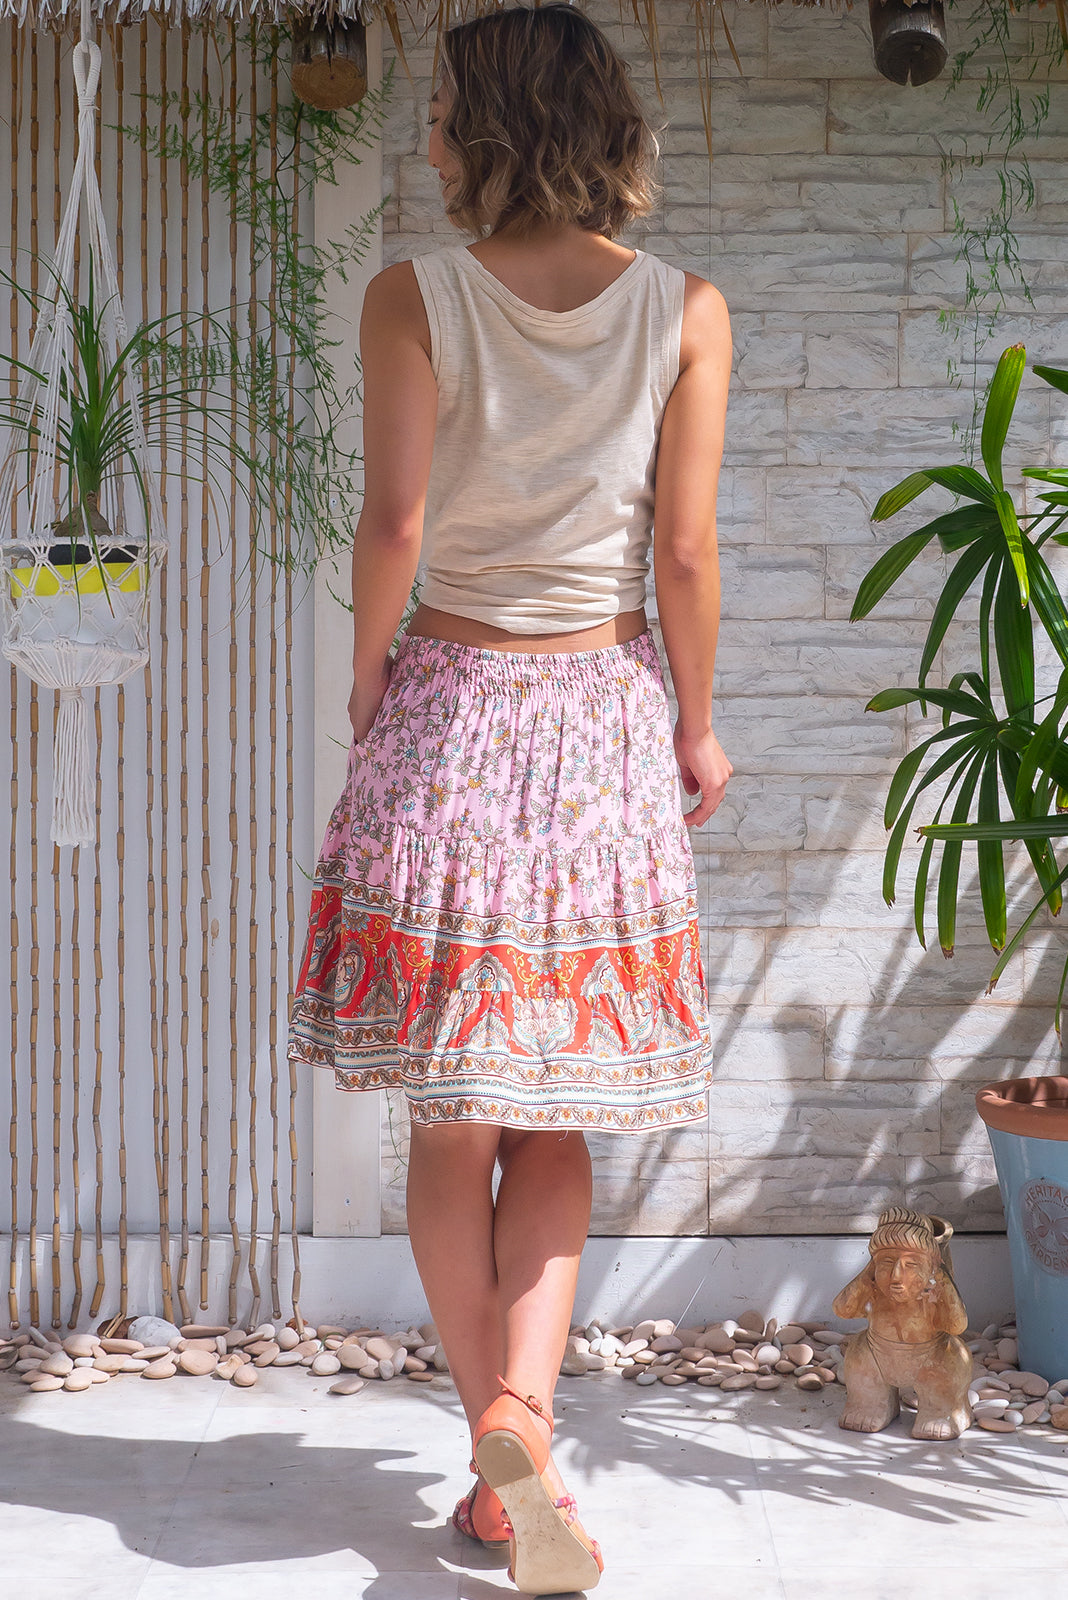 The Sea Coast Mini Skirt Strawberry Bohemian is such a comfortable pull-on style skirt featuring elasticated back waistband, tiered for flirty fullness, side pockets and 100% viscose in pale pink base with bohemian print and watermelon red border feature.